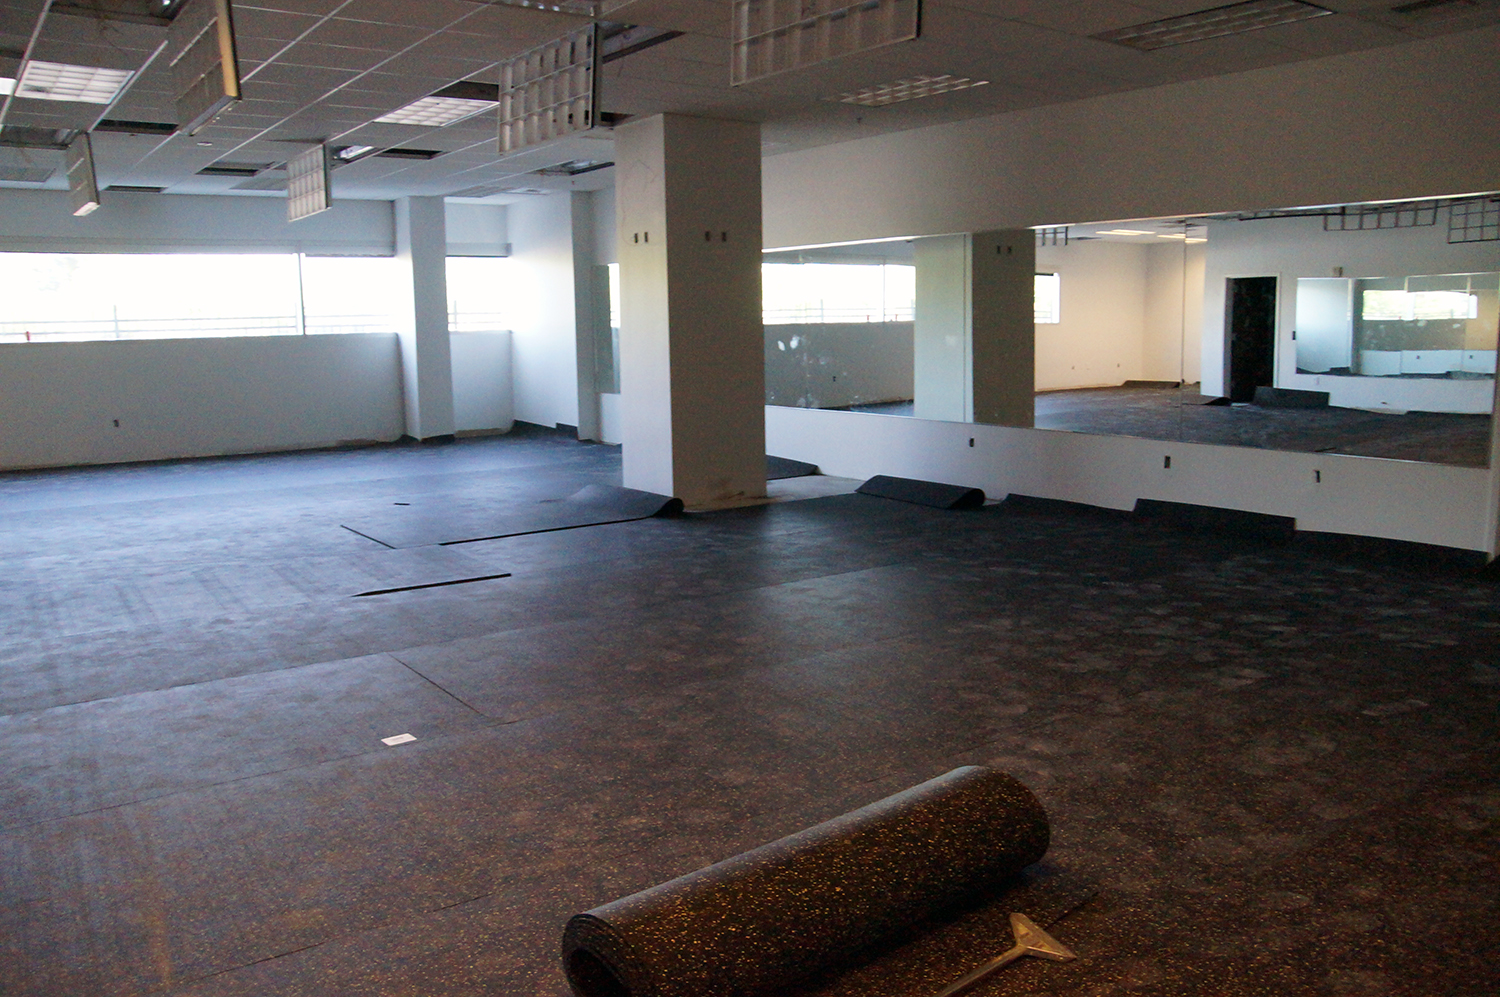 Training Room Flooring : Stocktonheat summer soapbox